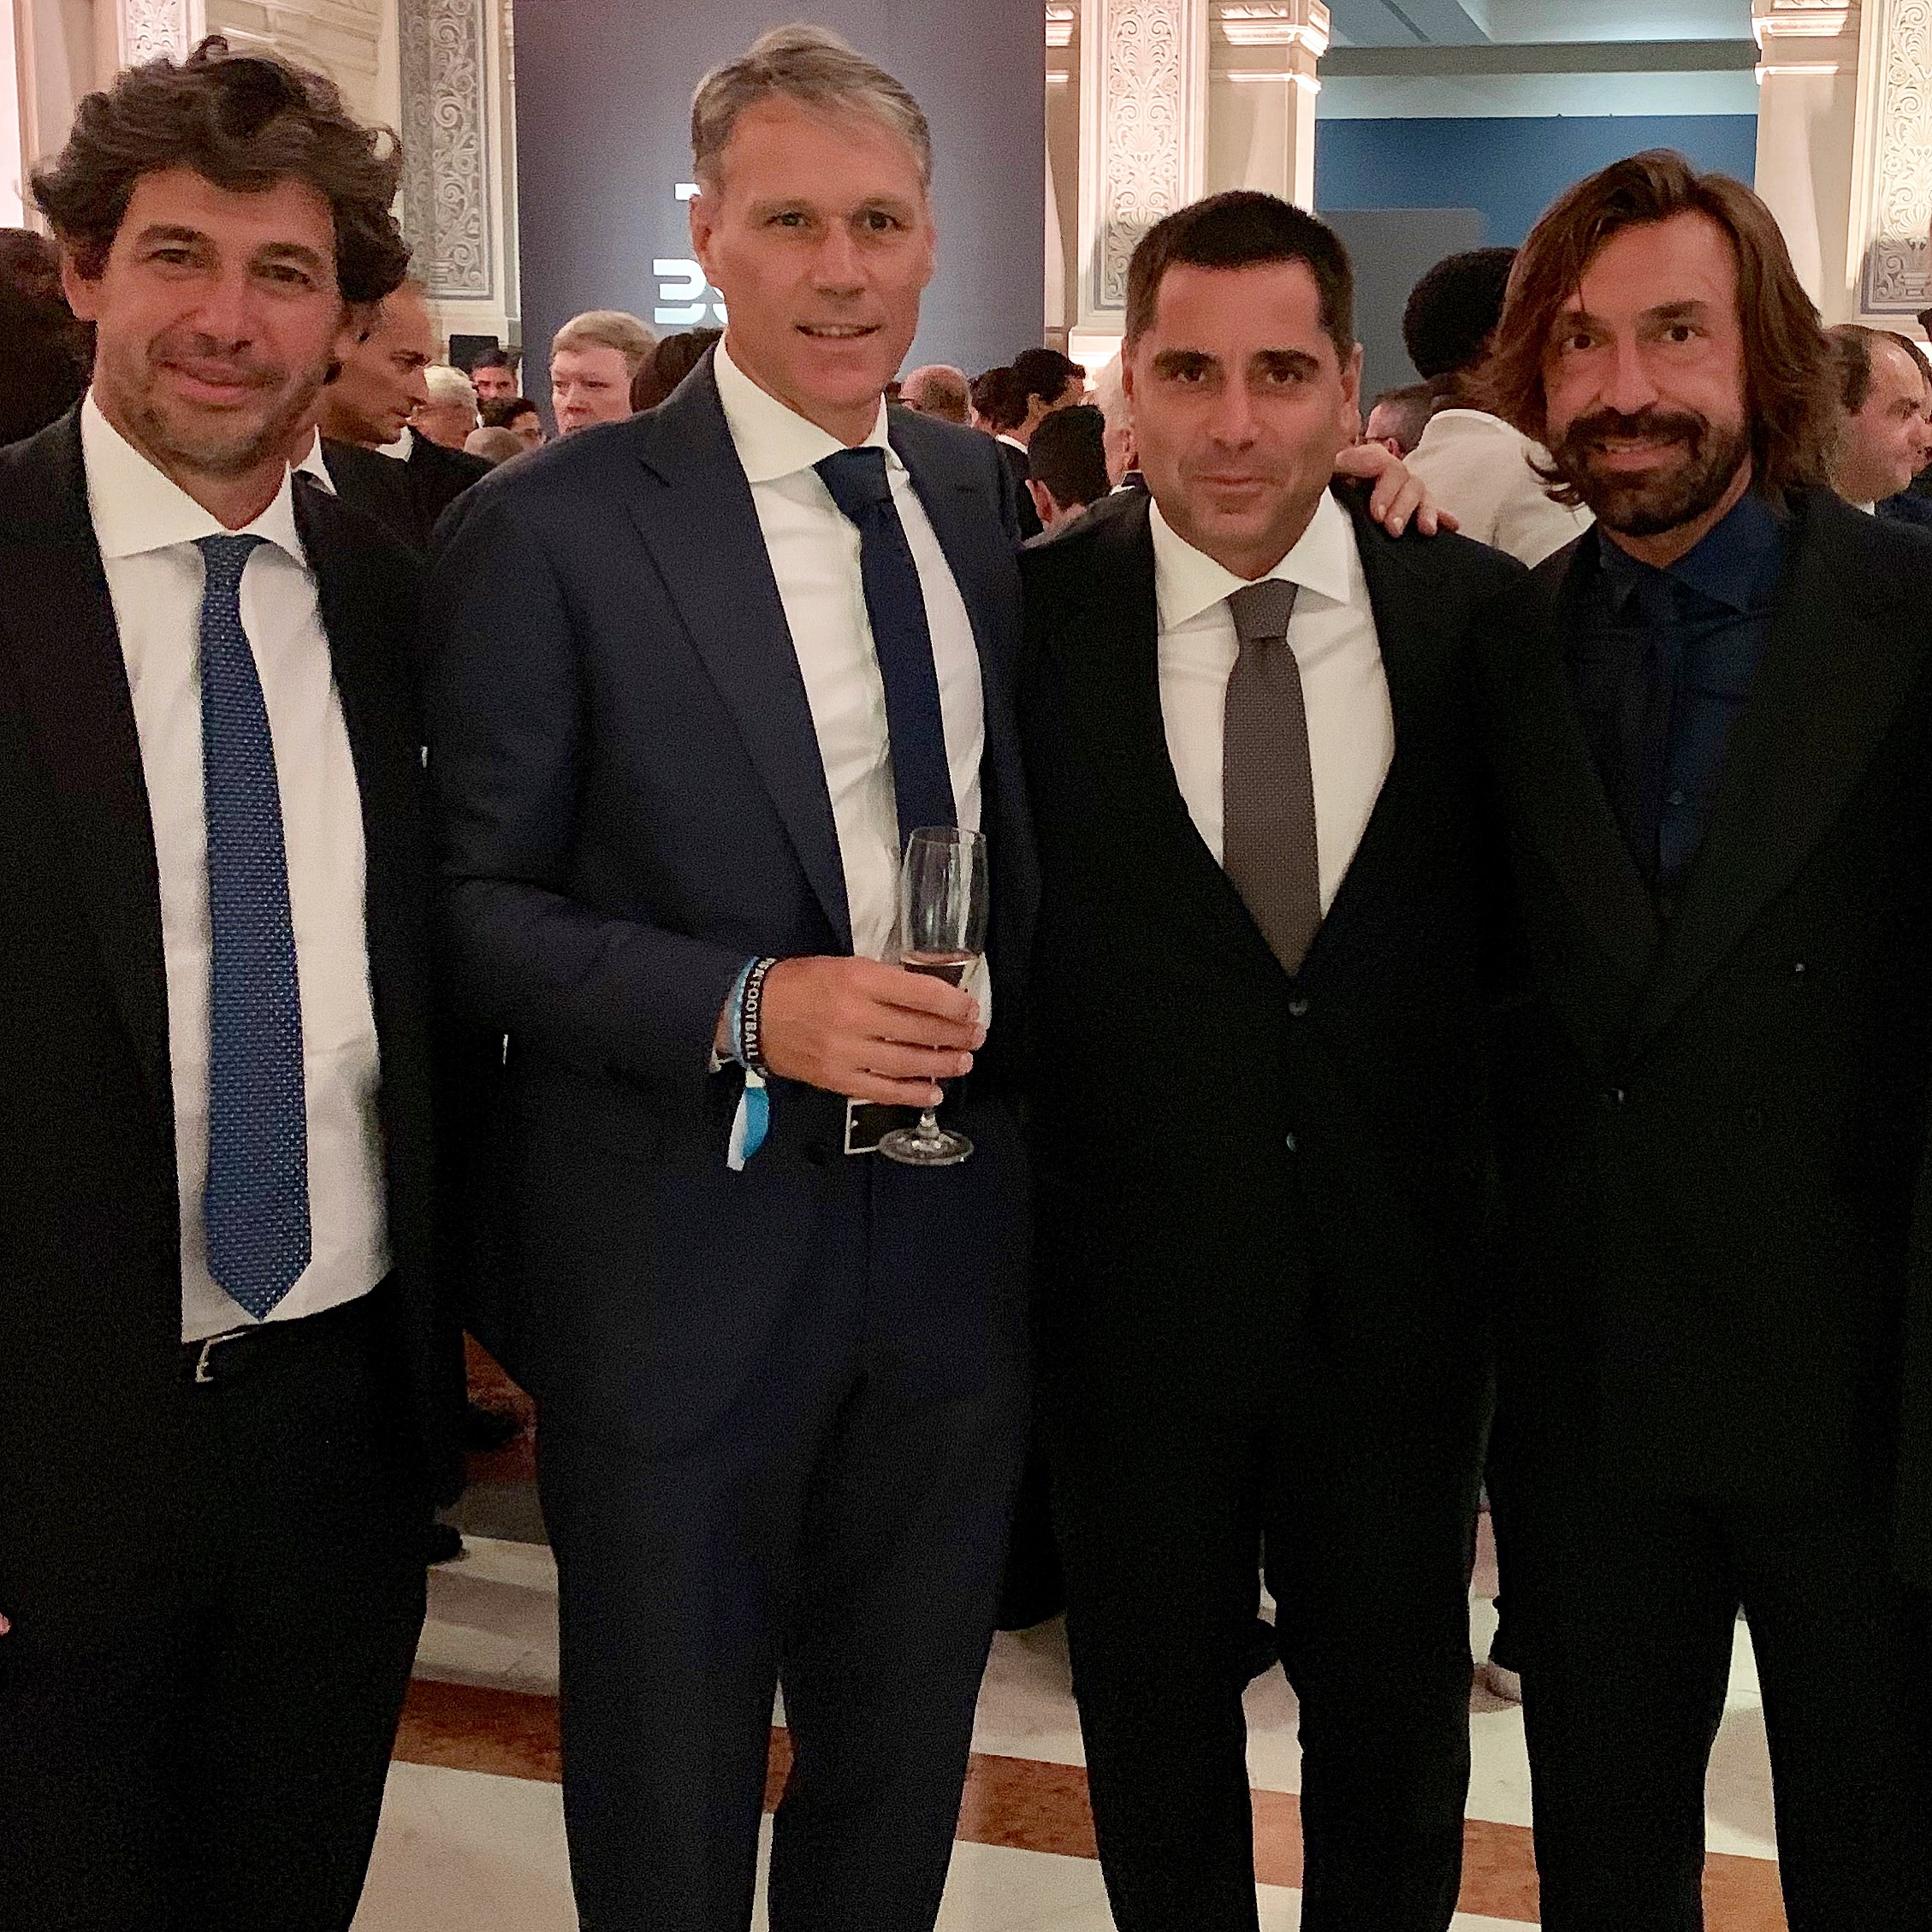 Silva International Investments and The Miami FC Owner Riccardo Silva alongside AC Milan Legends Demetrio Albertini, Marco Van Basten and Andrea Pirlo at The Best FIFA Football Awards in Milan